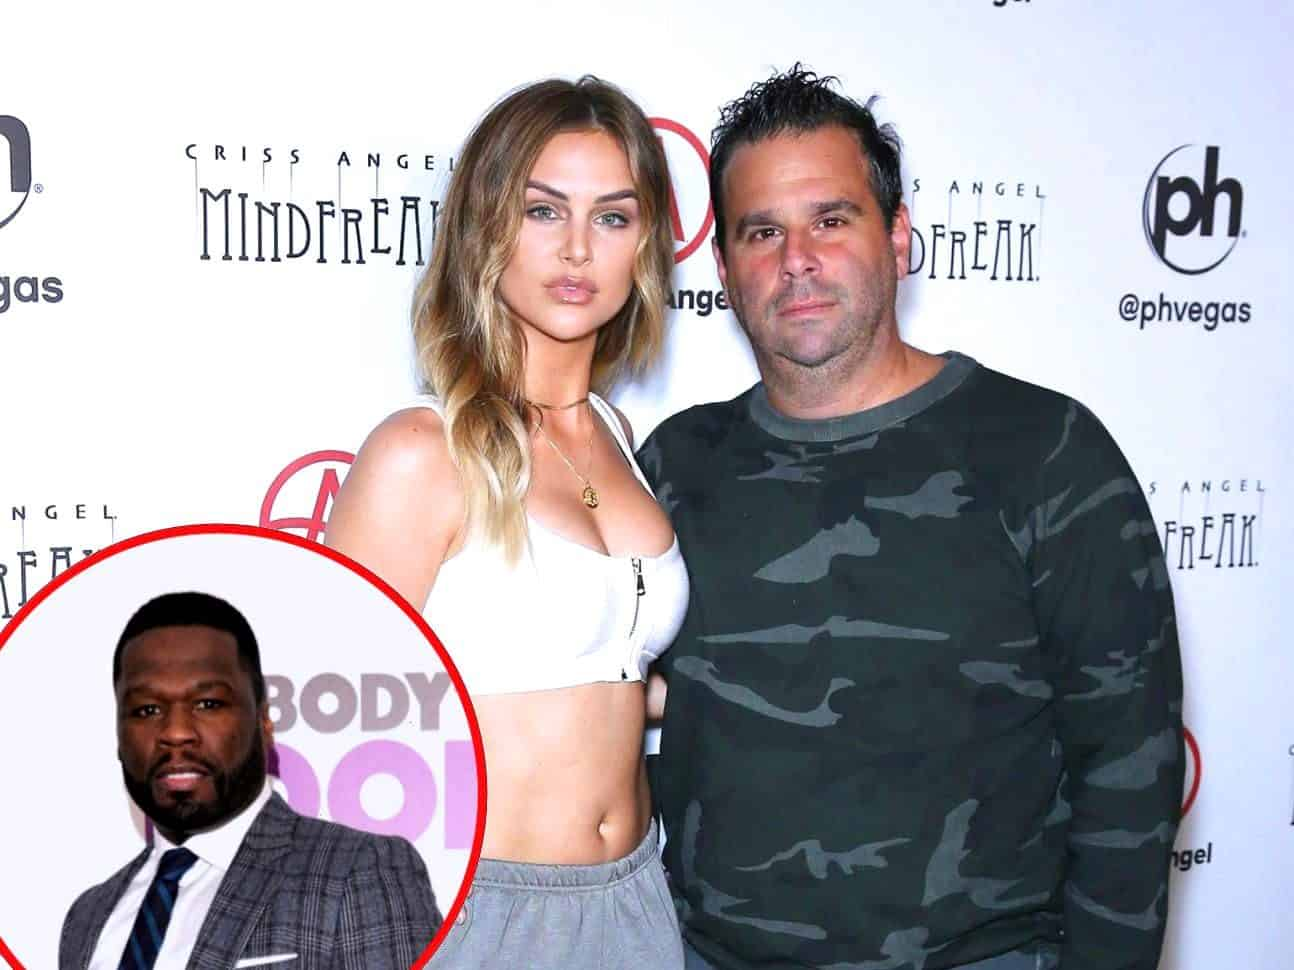 Vanderpump Rules Star Lala Kent Deletes Photos of Fiance Randall Emmett from Instagram, Reacts to Feud With 50 Cent